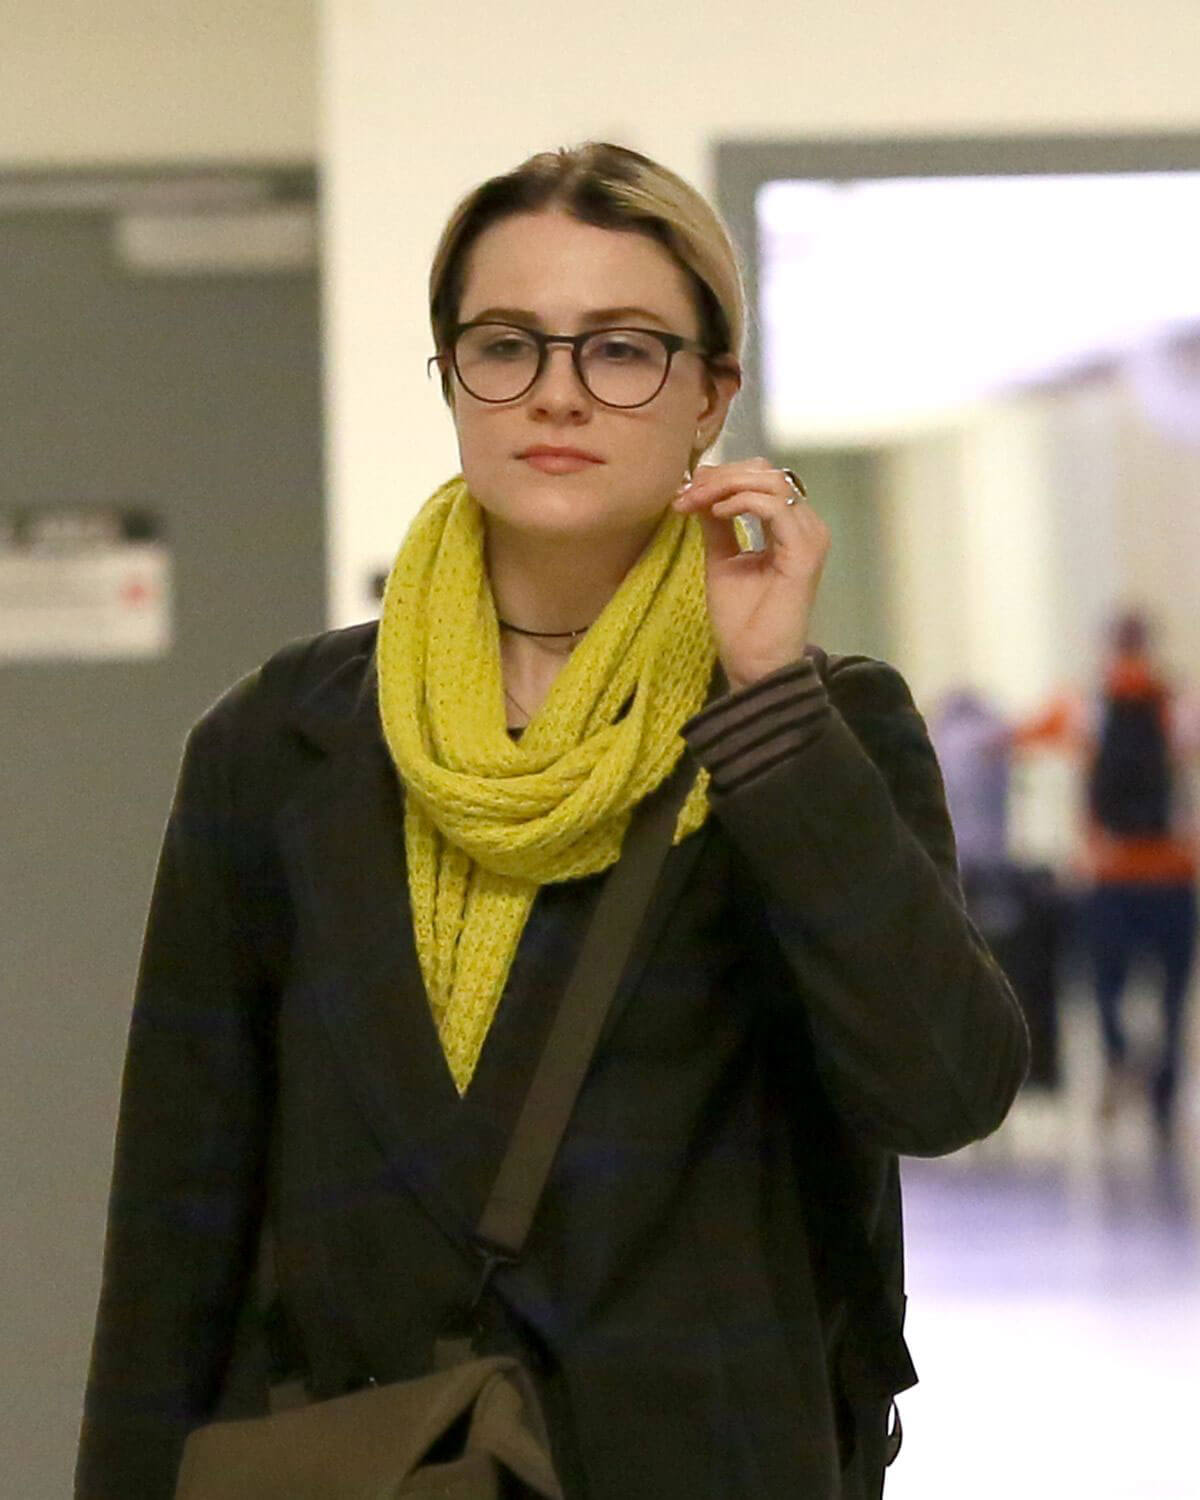 Evan Rachel Wood Stills at Lax Airport In Los Angeles